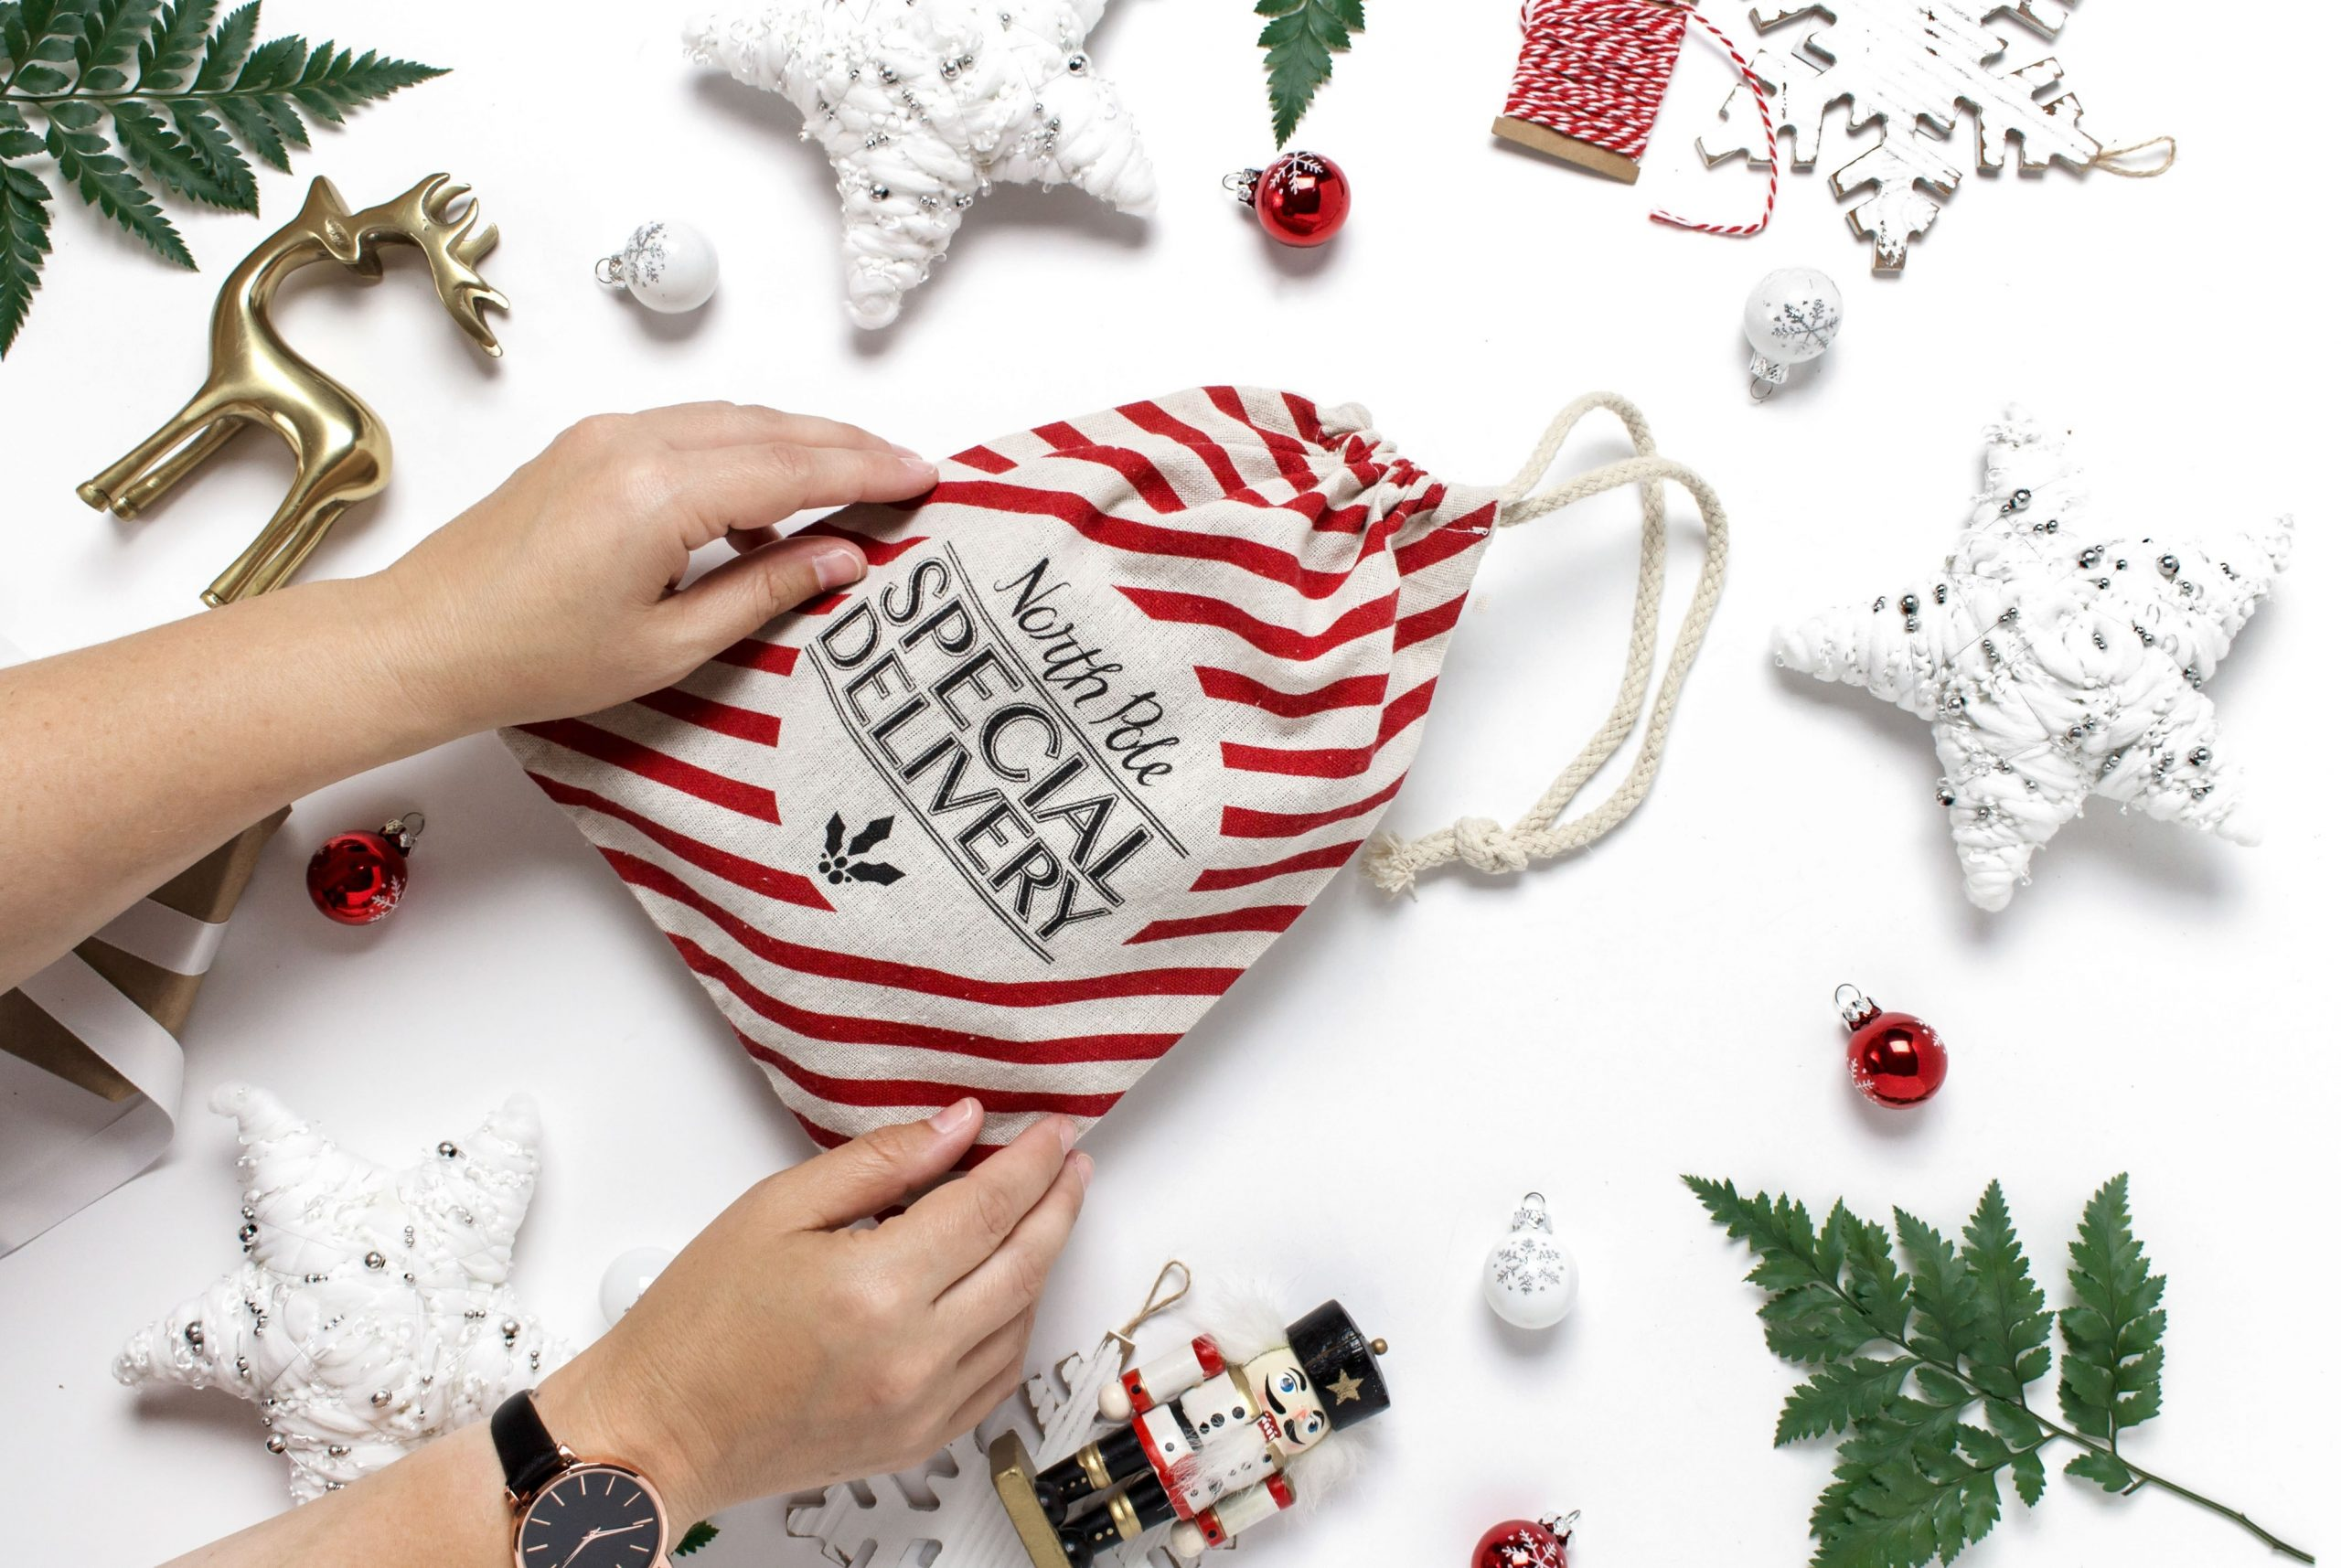 Red and white striped bag from the North Pole marked Special Delivery.